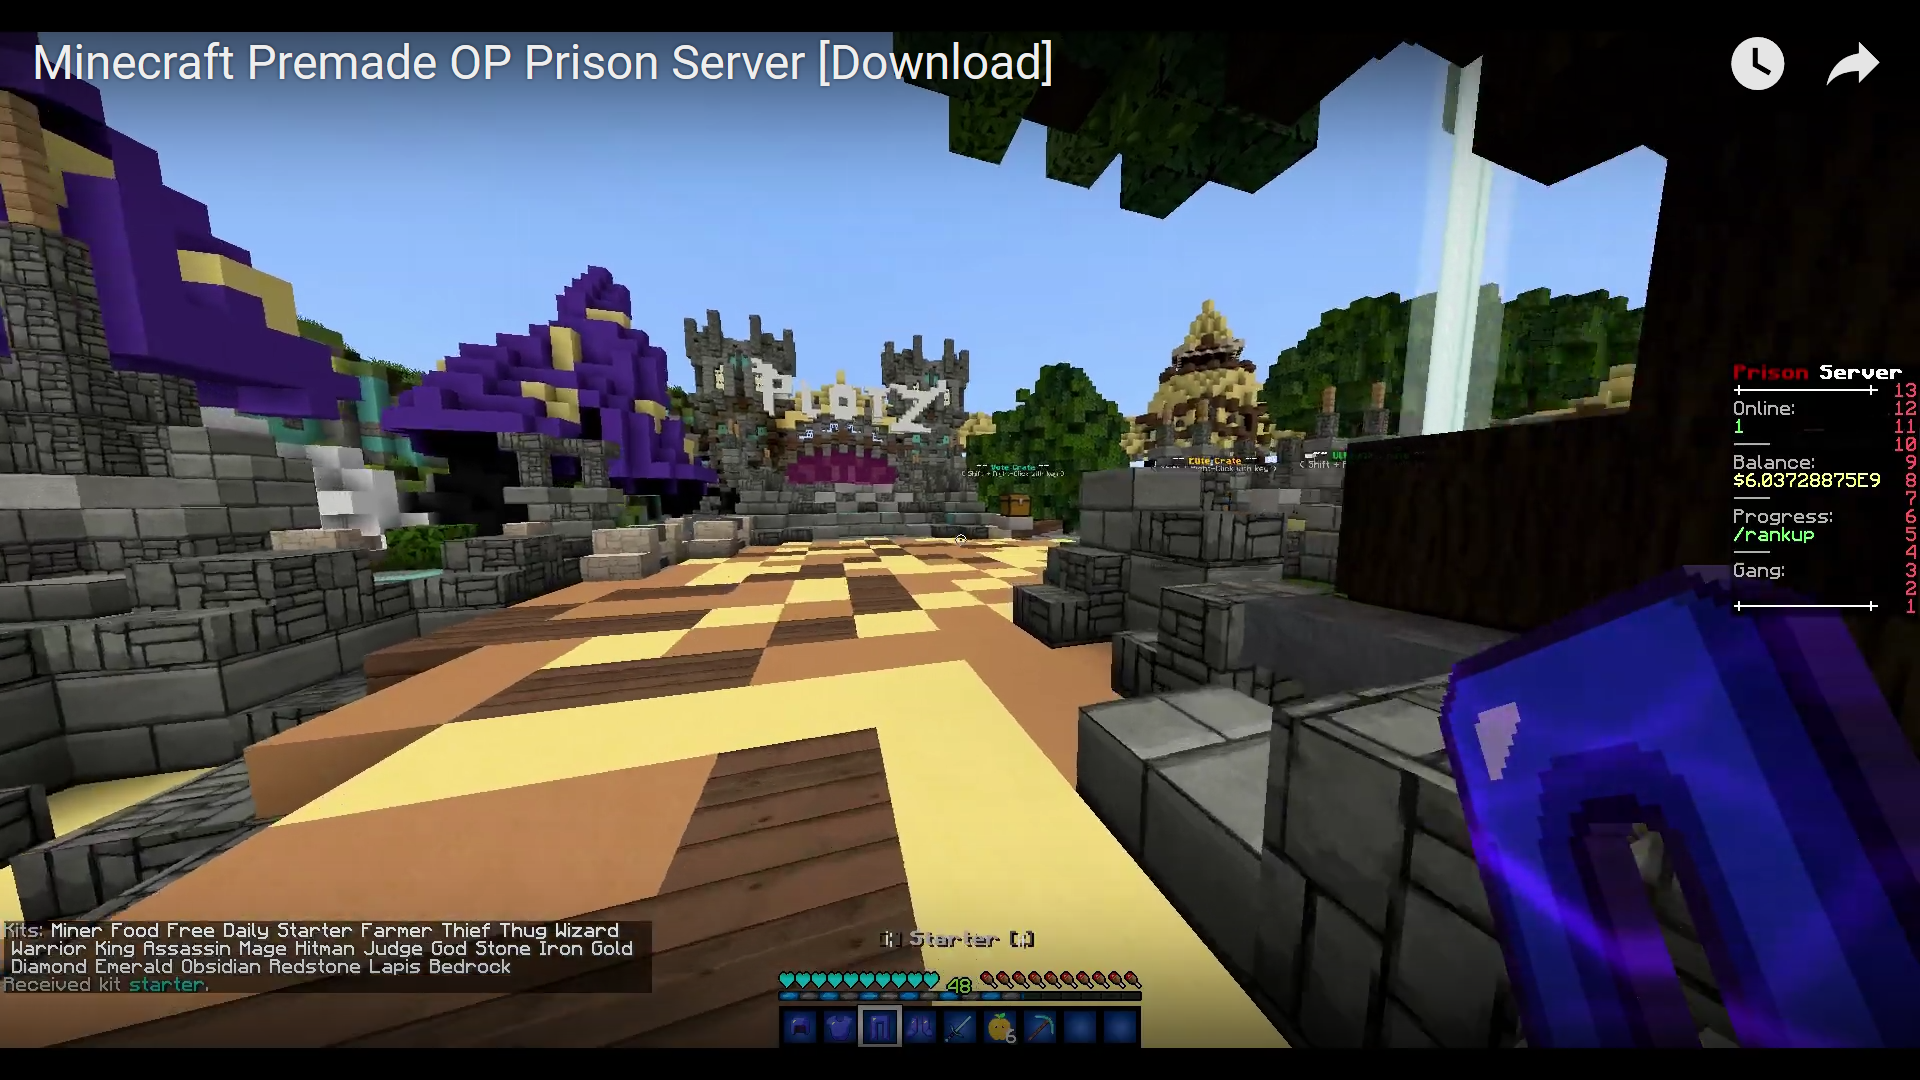 SERVER - Minecraft Premade OP Prison Server [Download] | BlackSpigotMC